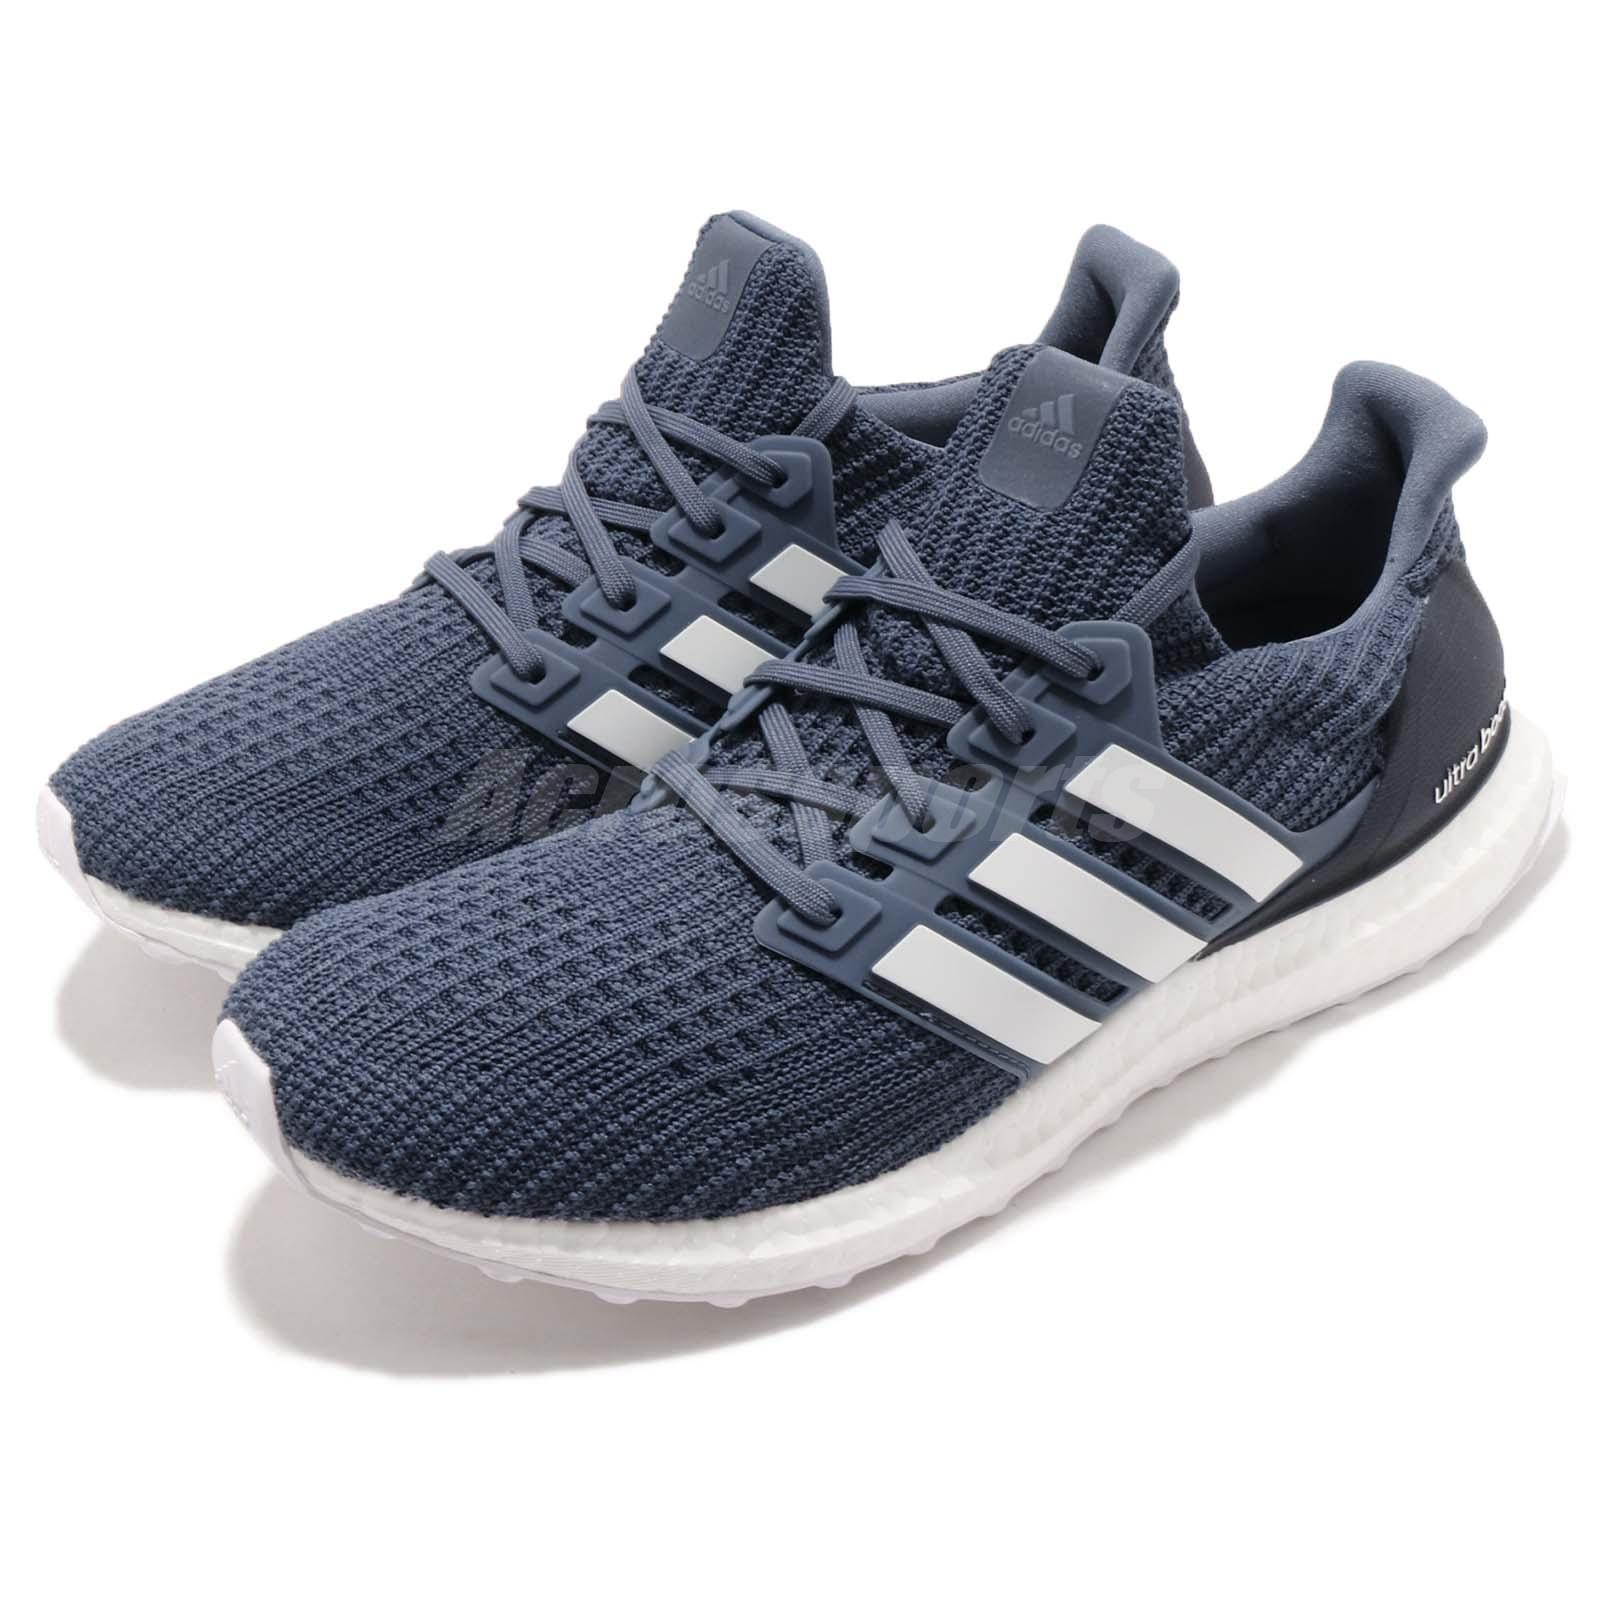 fce757aabf00f Details about adidas Ultraboost 4.0 Show Your Stripes Tech Ink White Men  Running Shoes CM8113